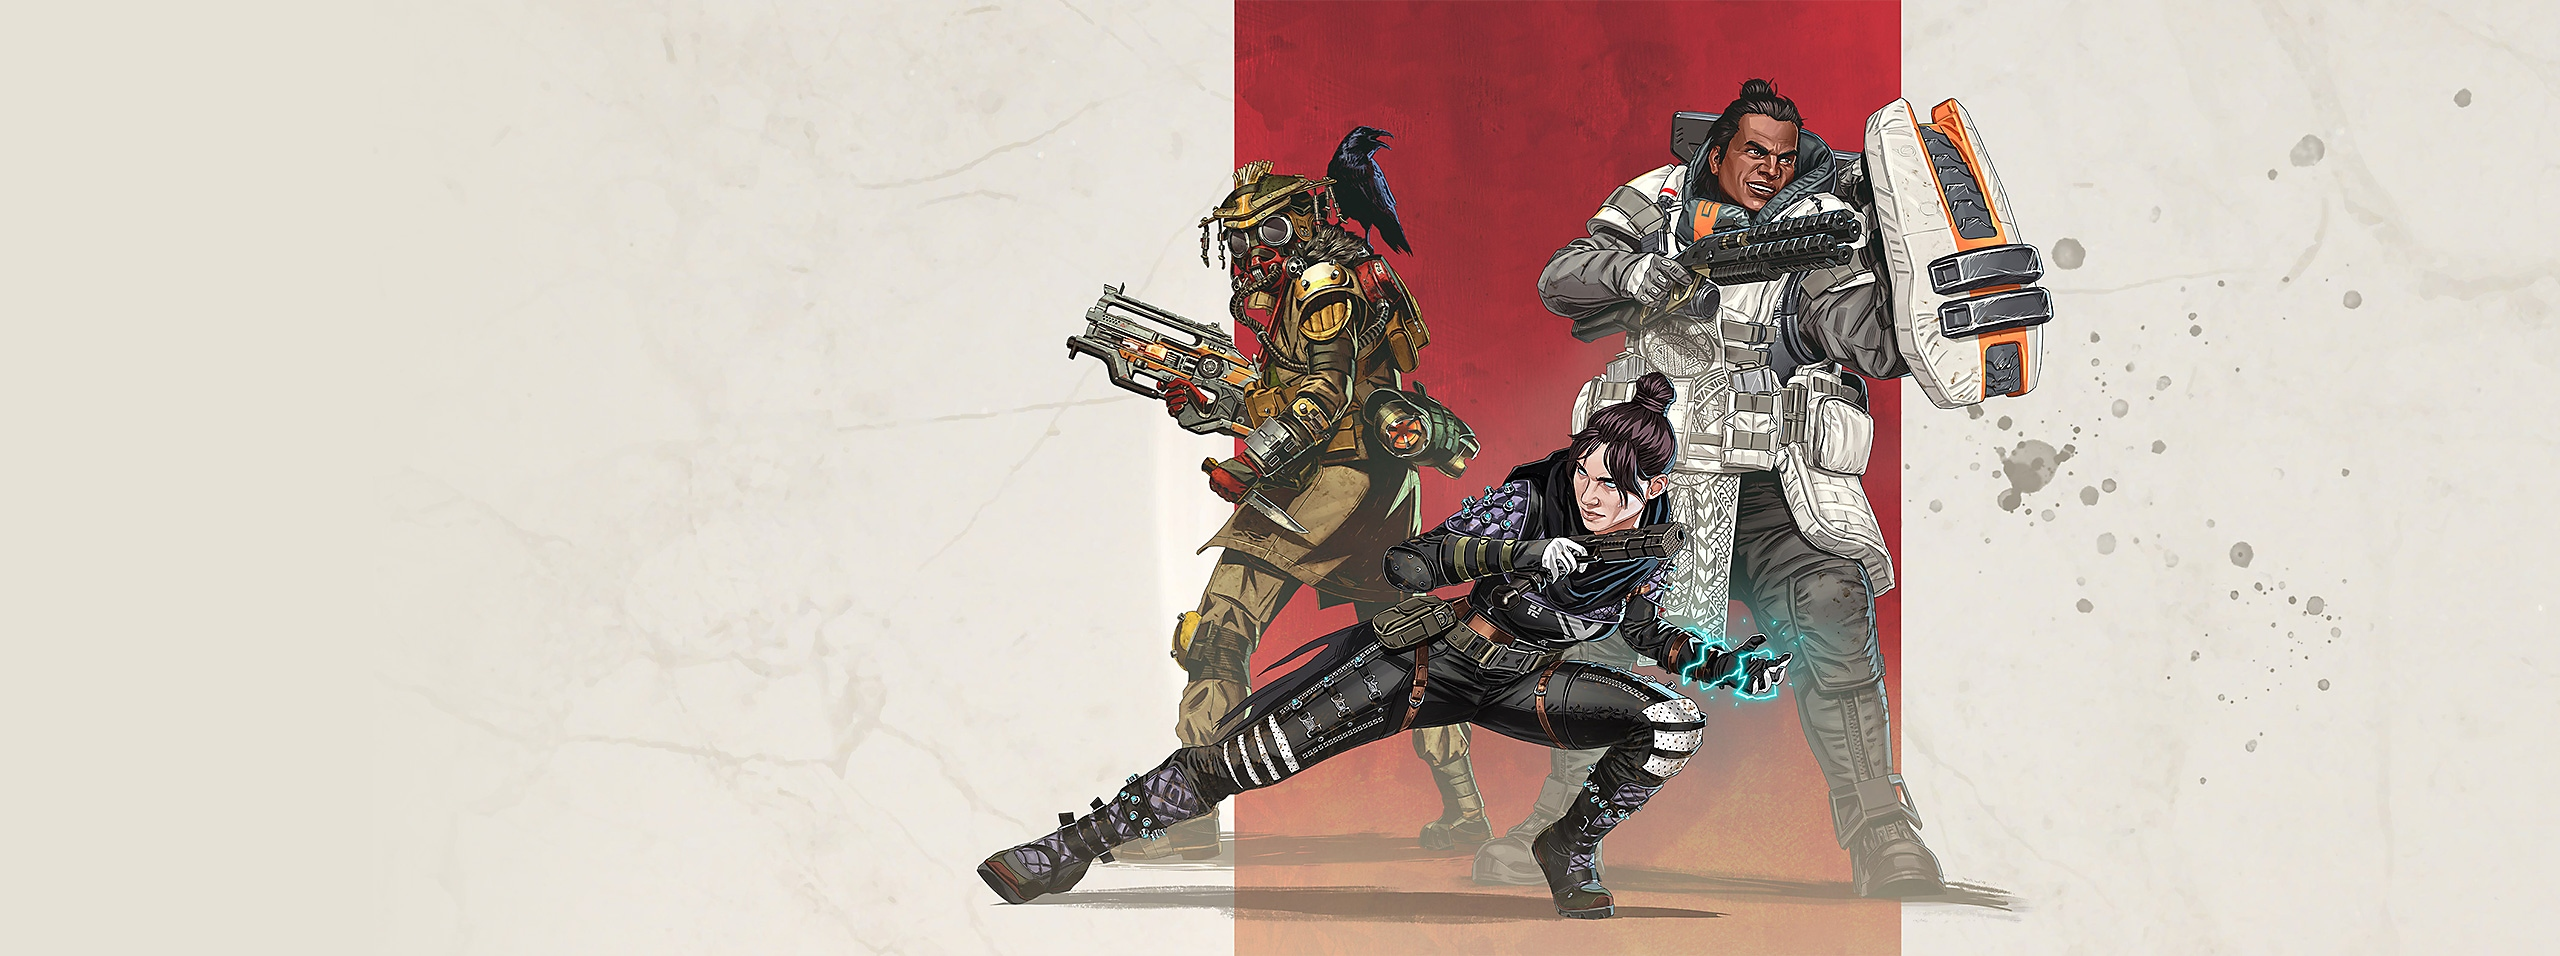 APEX Legends - Arte clave